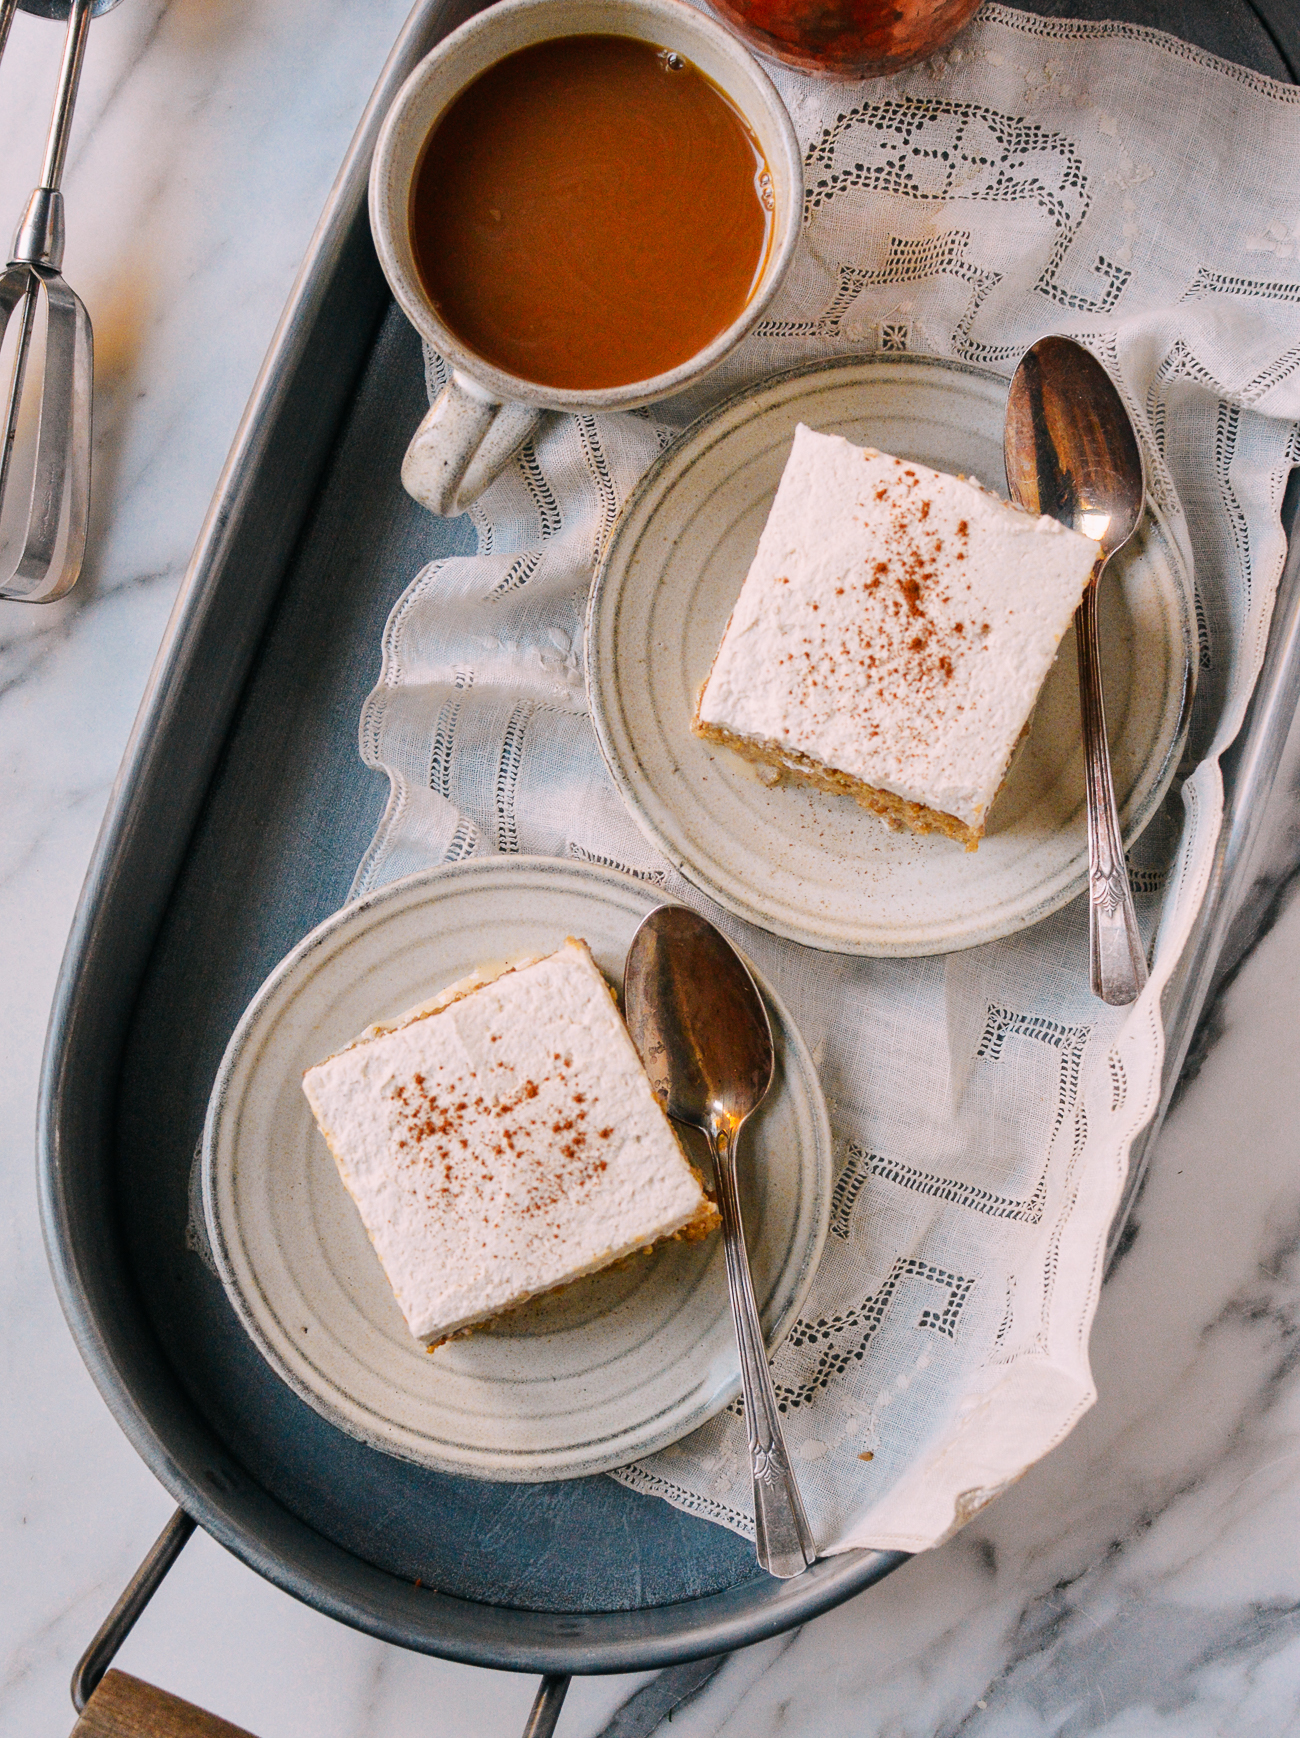 Slices of pumpkin tres leches cake